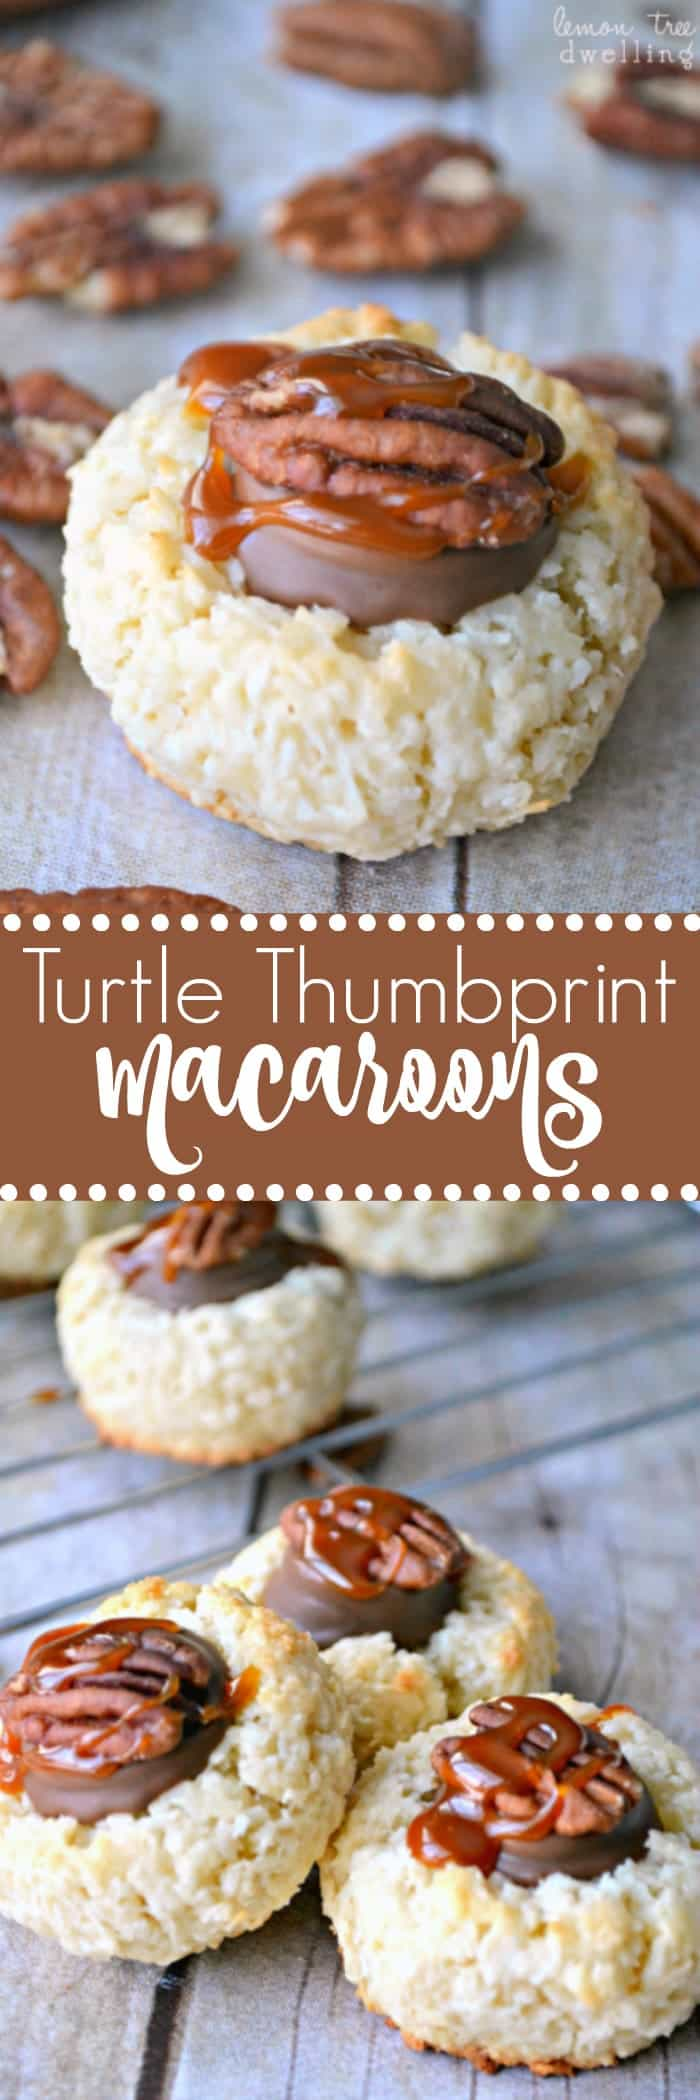 Turtle Thumbprint Macaroons are simply divine! These 4 ingredient coconut macaroons are topped with Rolos, pecans, and salted caramel sauce. Almond Joy meets Turtle...and it's love at first bite!